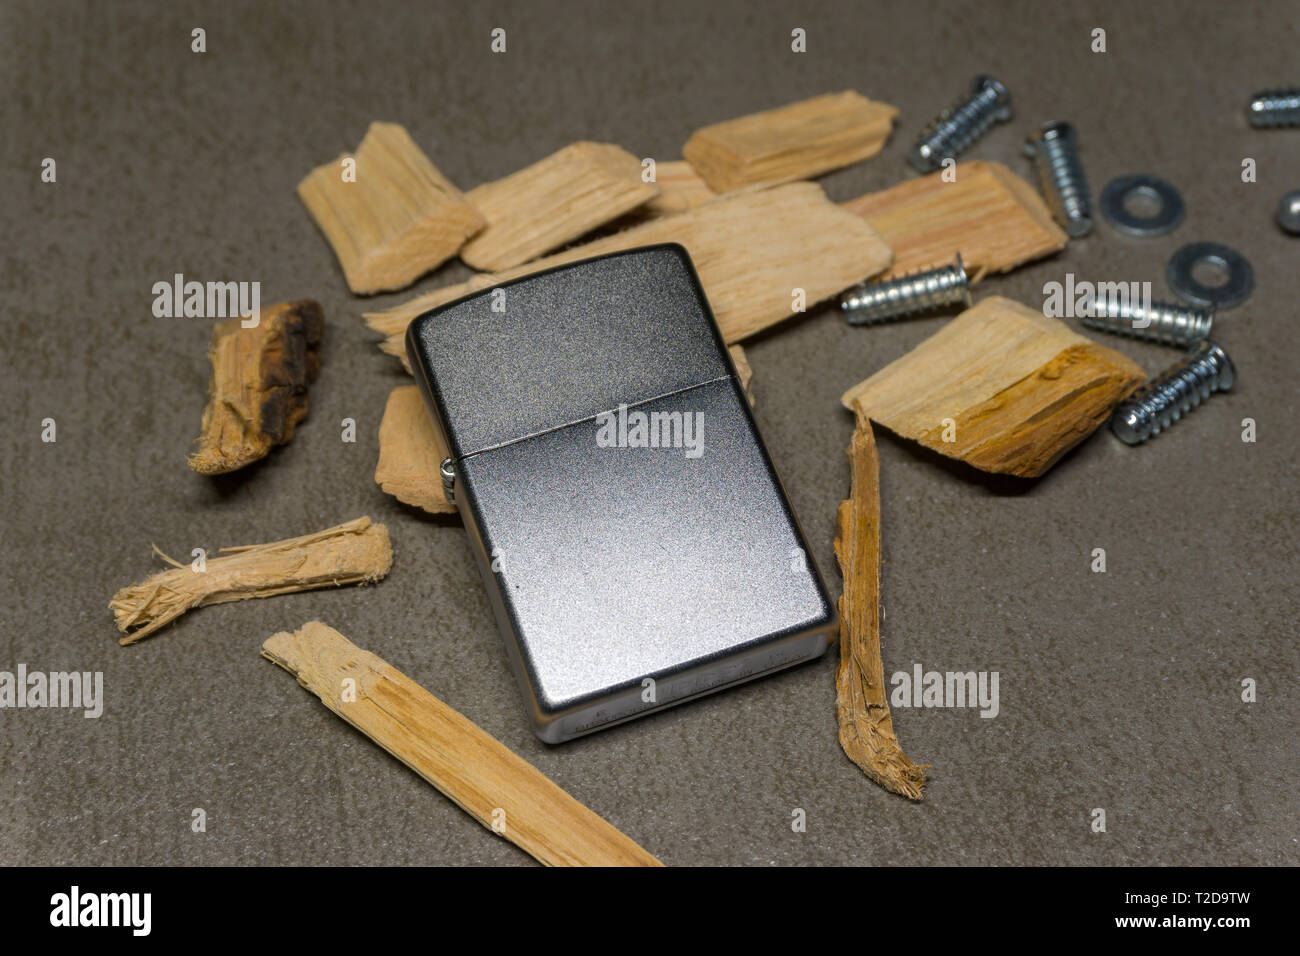 Zippo with wooden chips - Stock Image